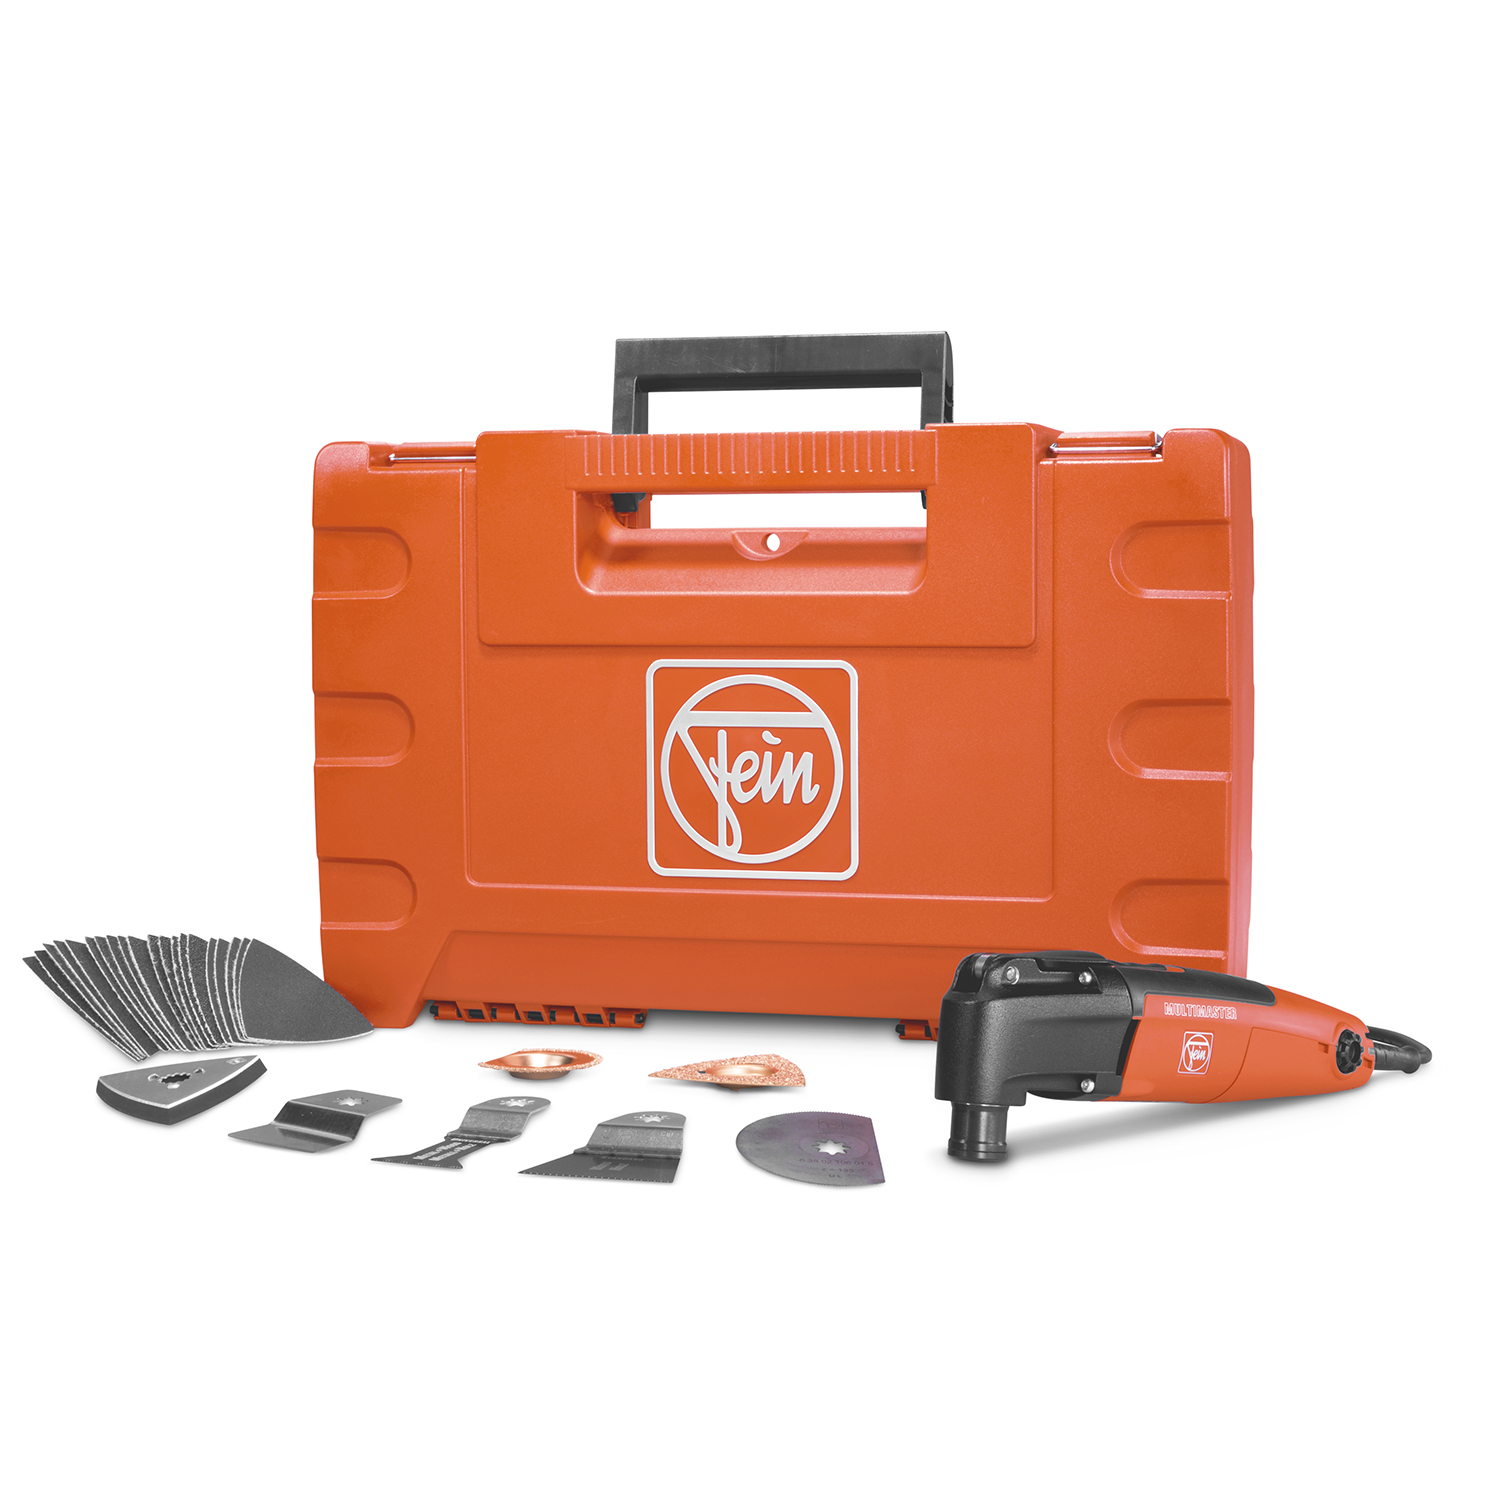 fein fmm 250q 250w multimaster select plus oscillating detail sander tool kit ebay. Black Bedroom Furniture Sets. Home Design Ideas